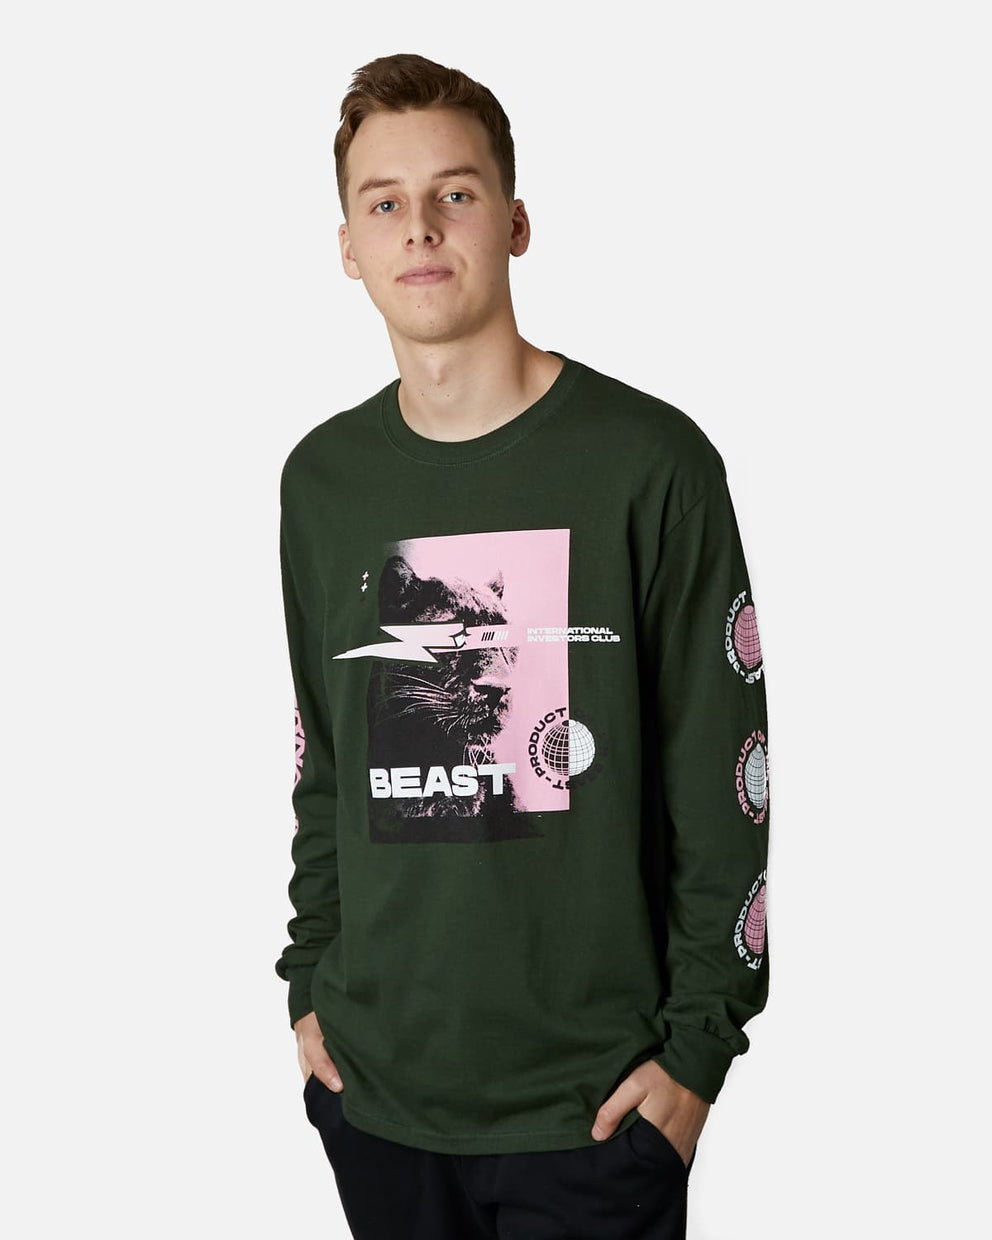 'International Investors Club' Long Sleeve Tee - Forest Green